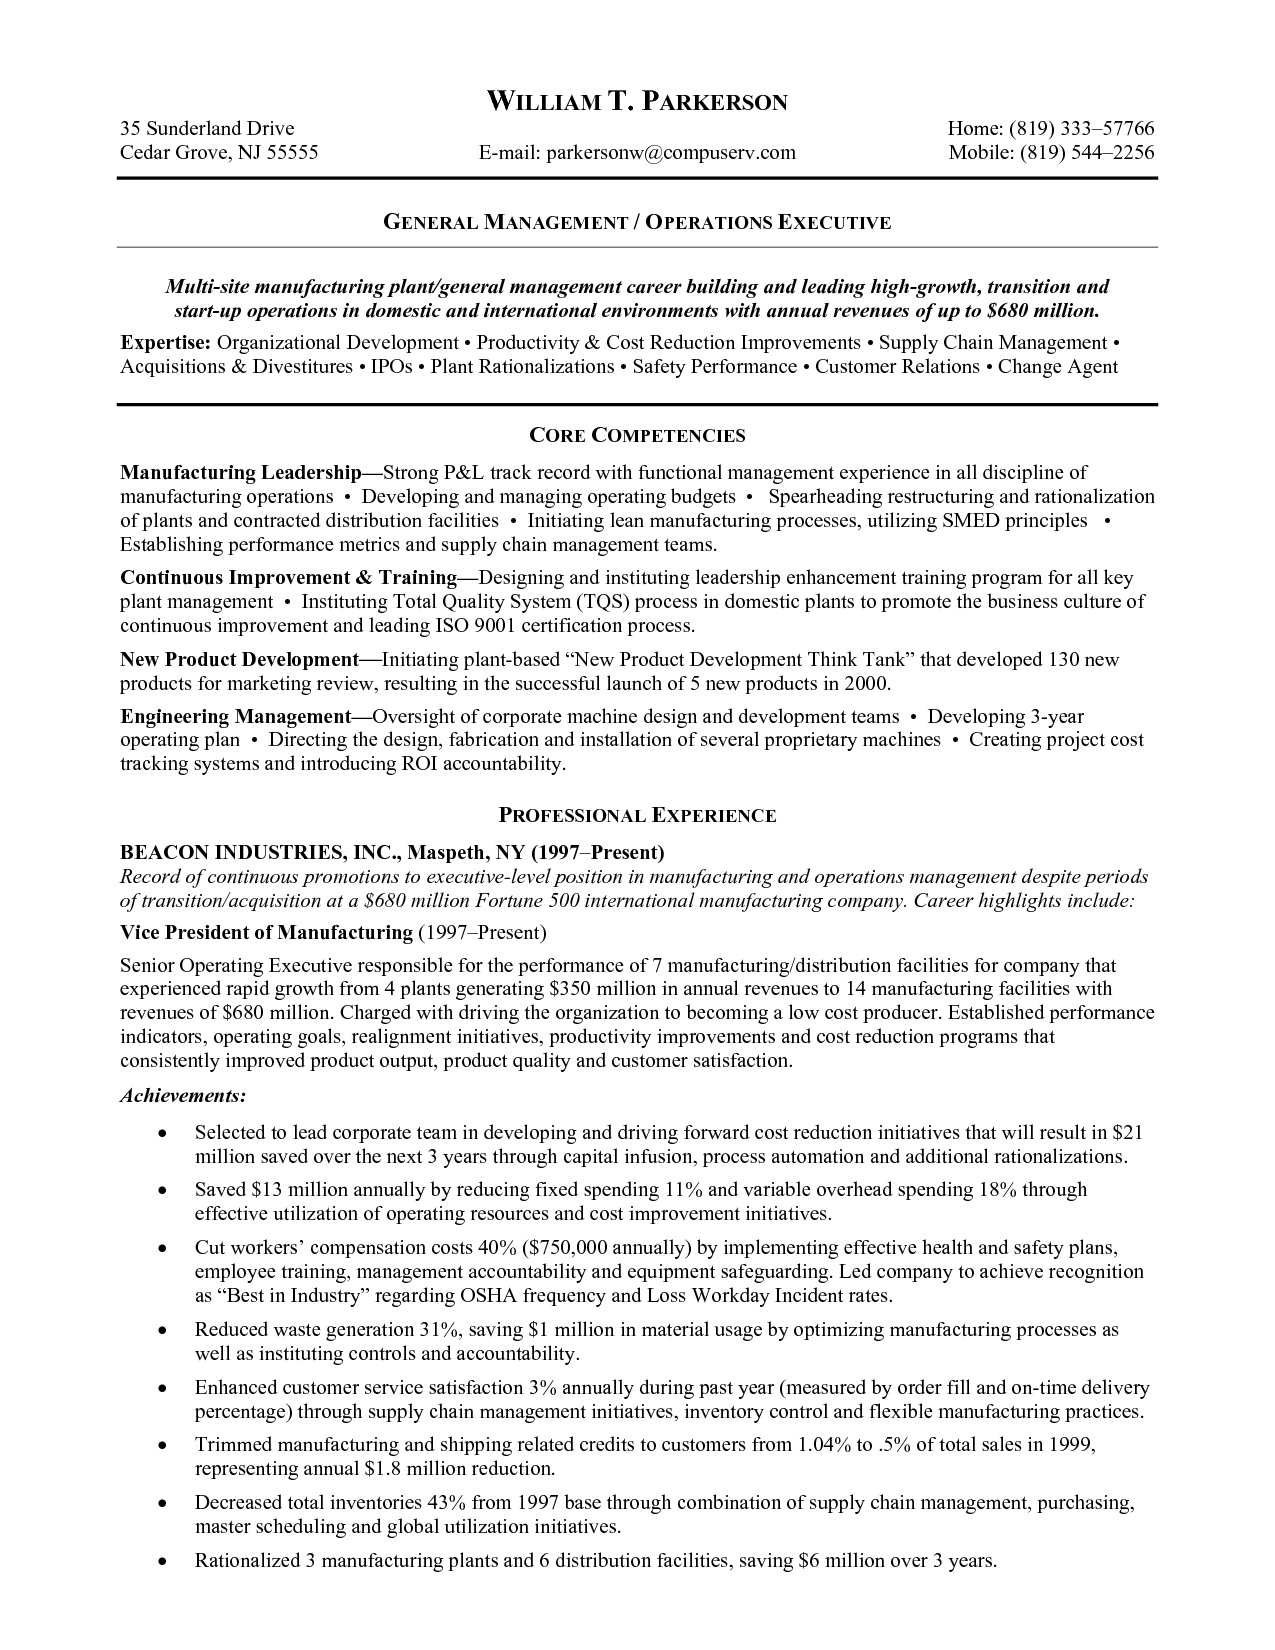 Objective Examples On Resume General Manufacturing Resume Samples Objective Examples Free Edit